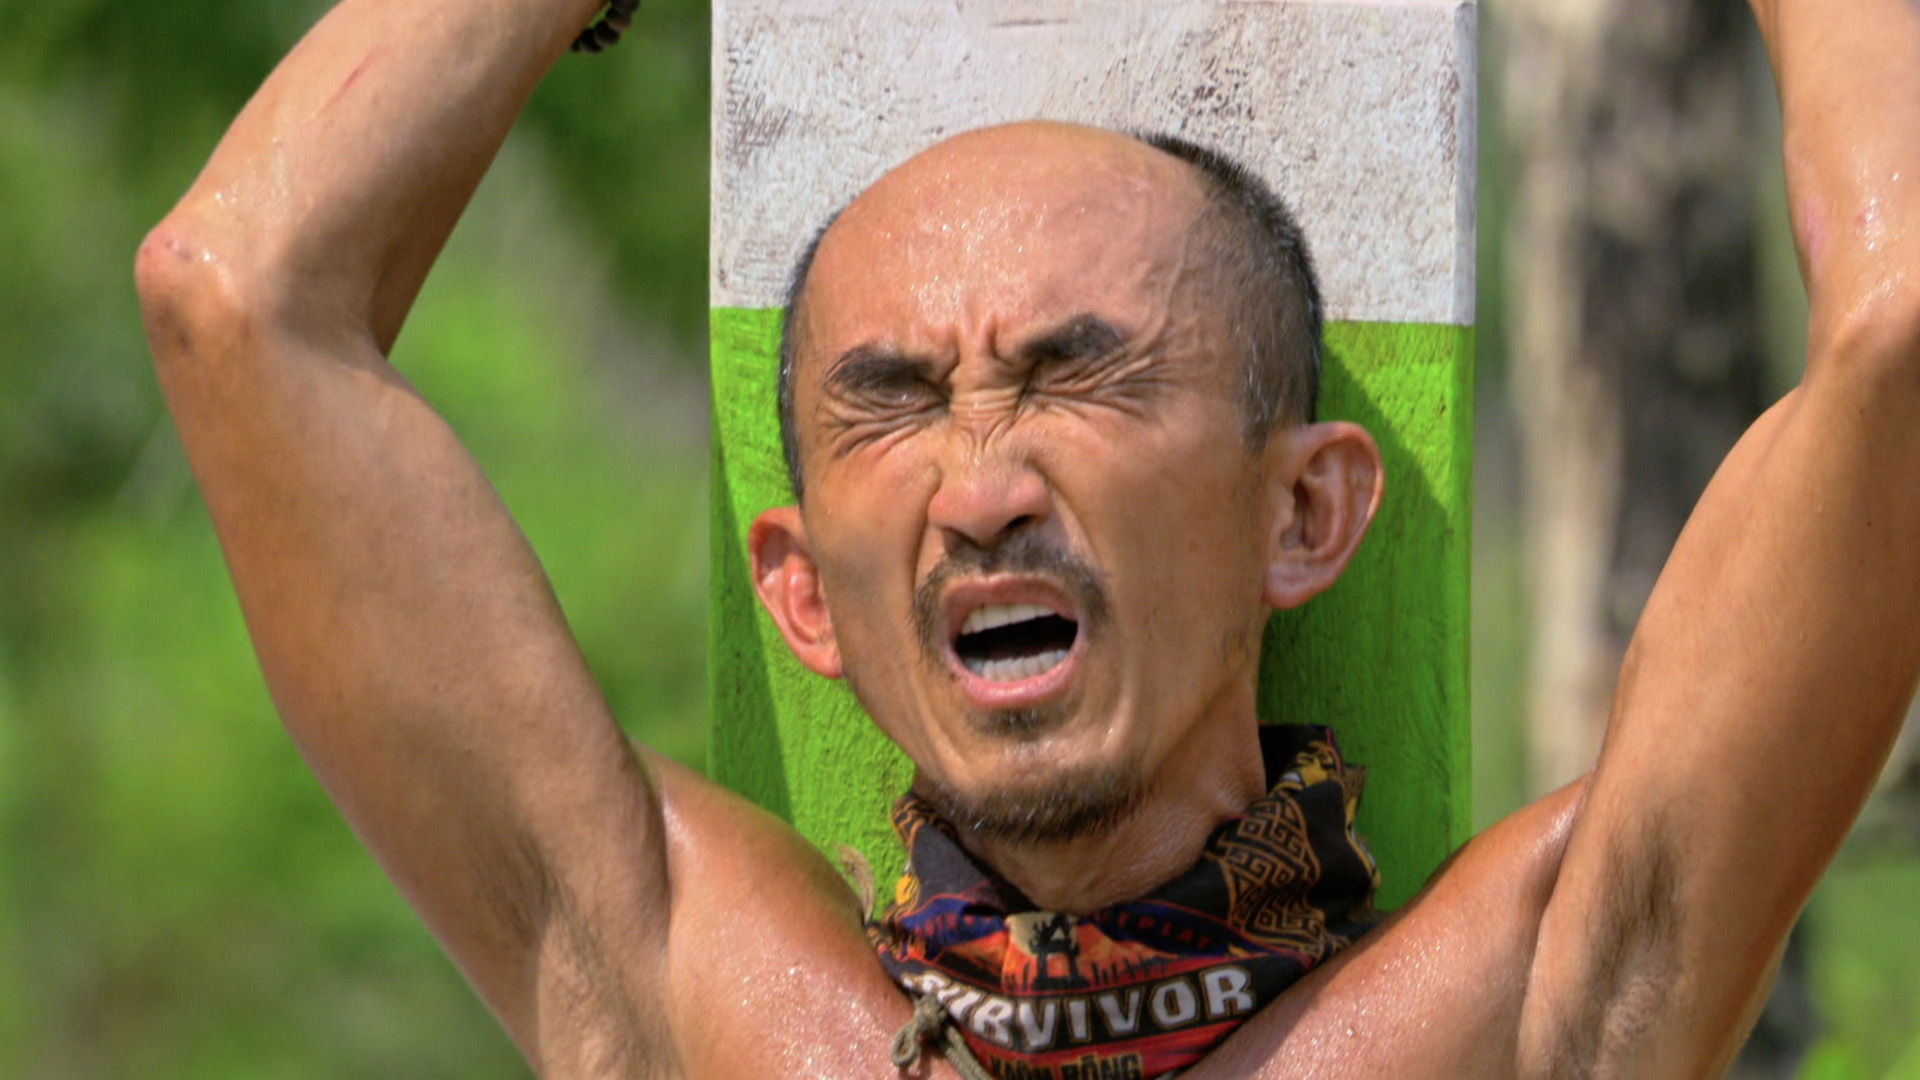 6. Tai battles his way to an Individual Immunity win.